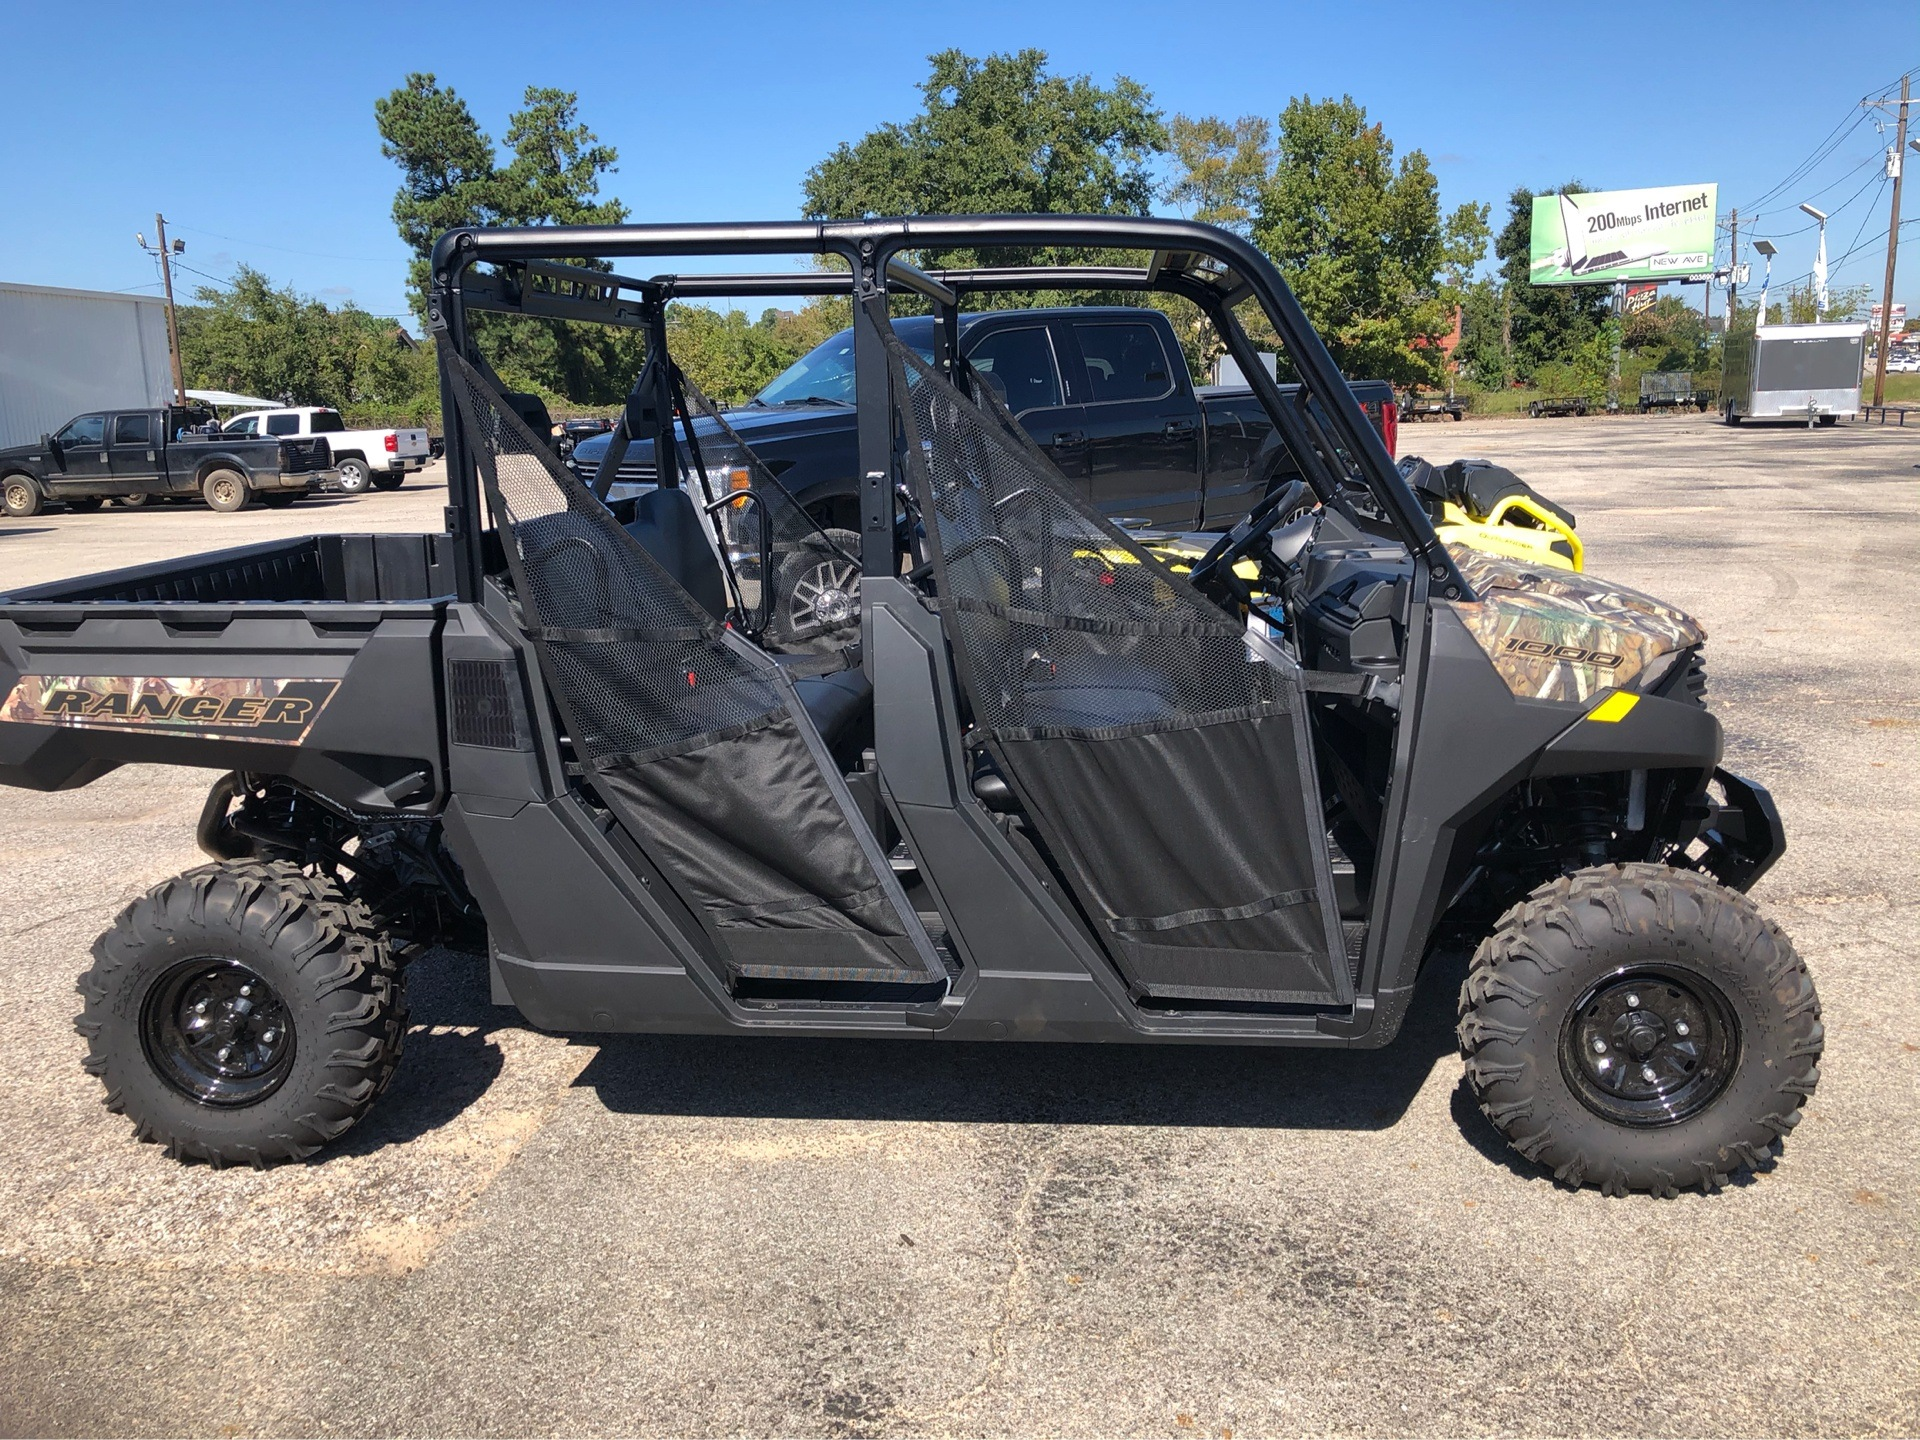 2020 Polaris Ranger Crew 1000 EPS in Cleveland, Texas - Photo 1